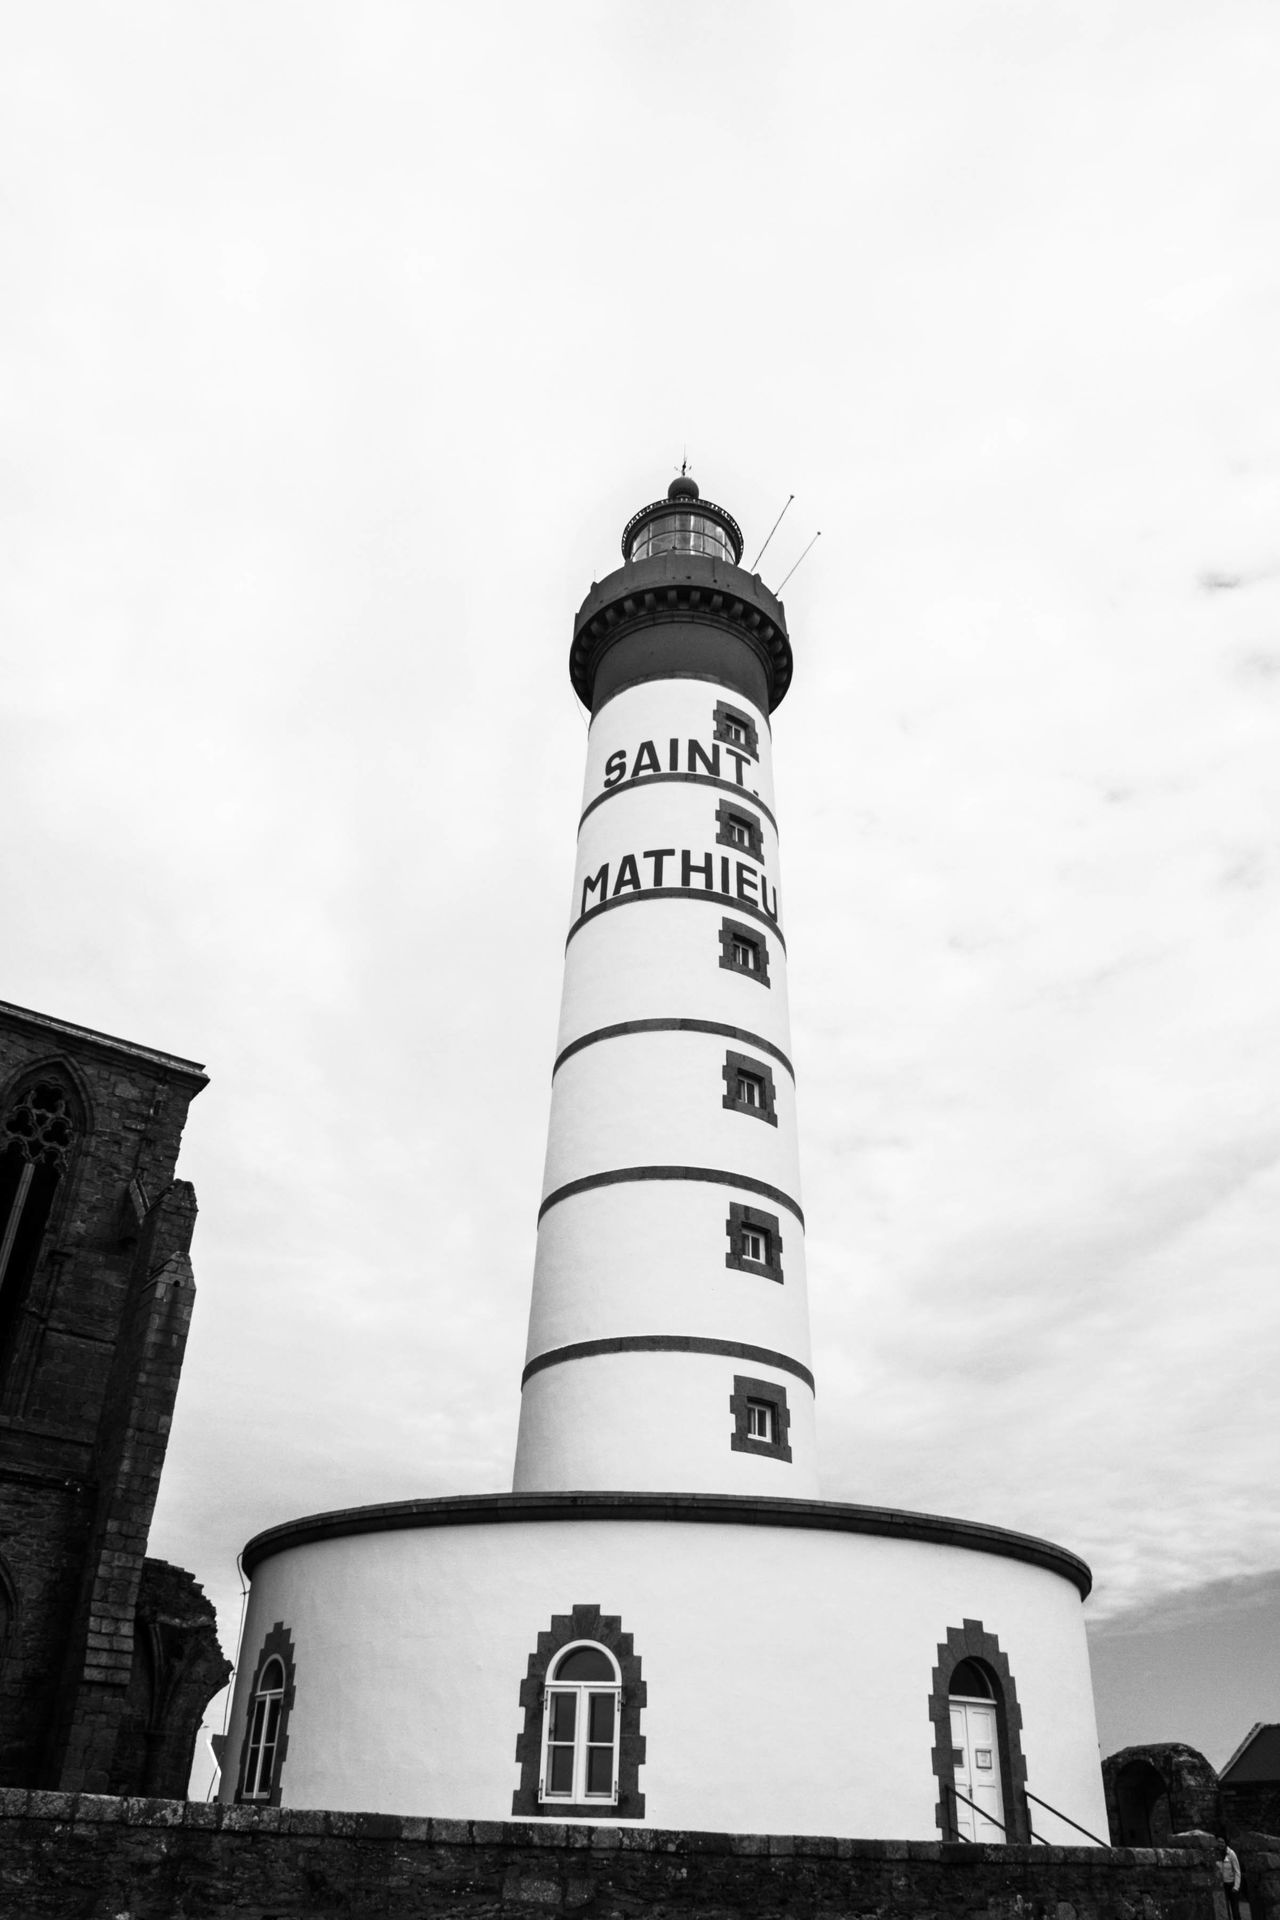 Bnw_friday_eyeemchallenge Bnw_lighthouse_captures Lighthouse Architecture The Architect - 2017 EyeEm Awards Streetphotography Lighthouse_lovers Travel Destinations Bnw_lighthouse